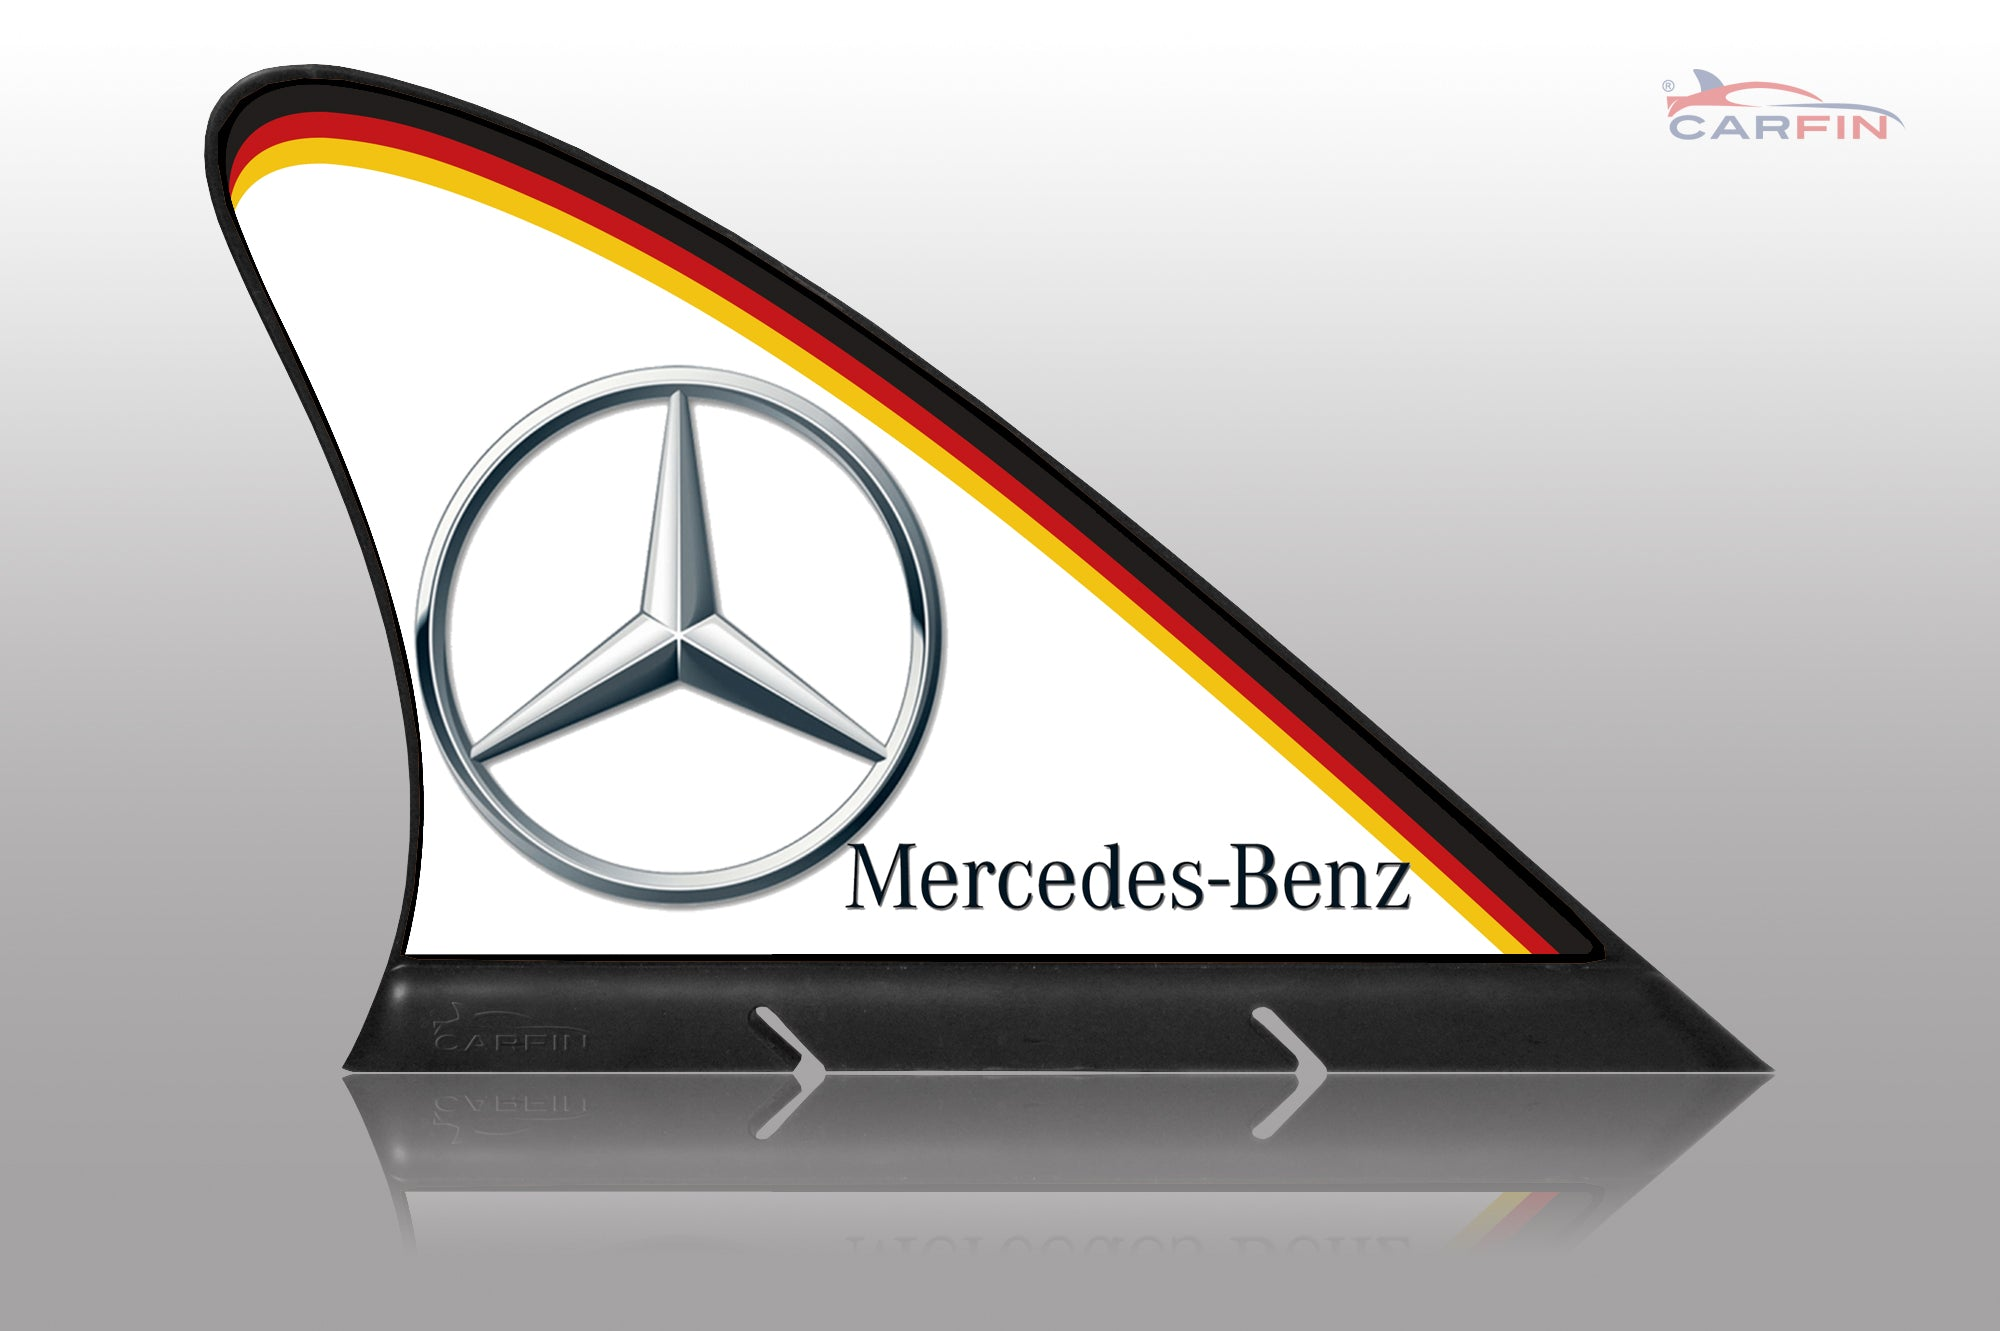 Carfin mercedes benz car flag carfin magnetic car signs